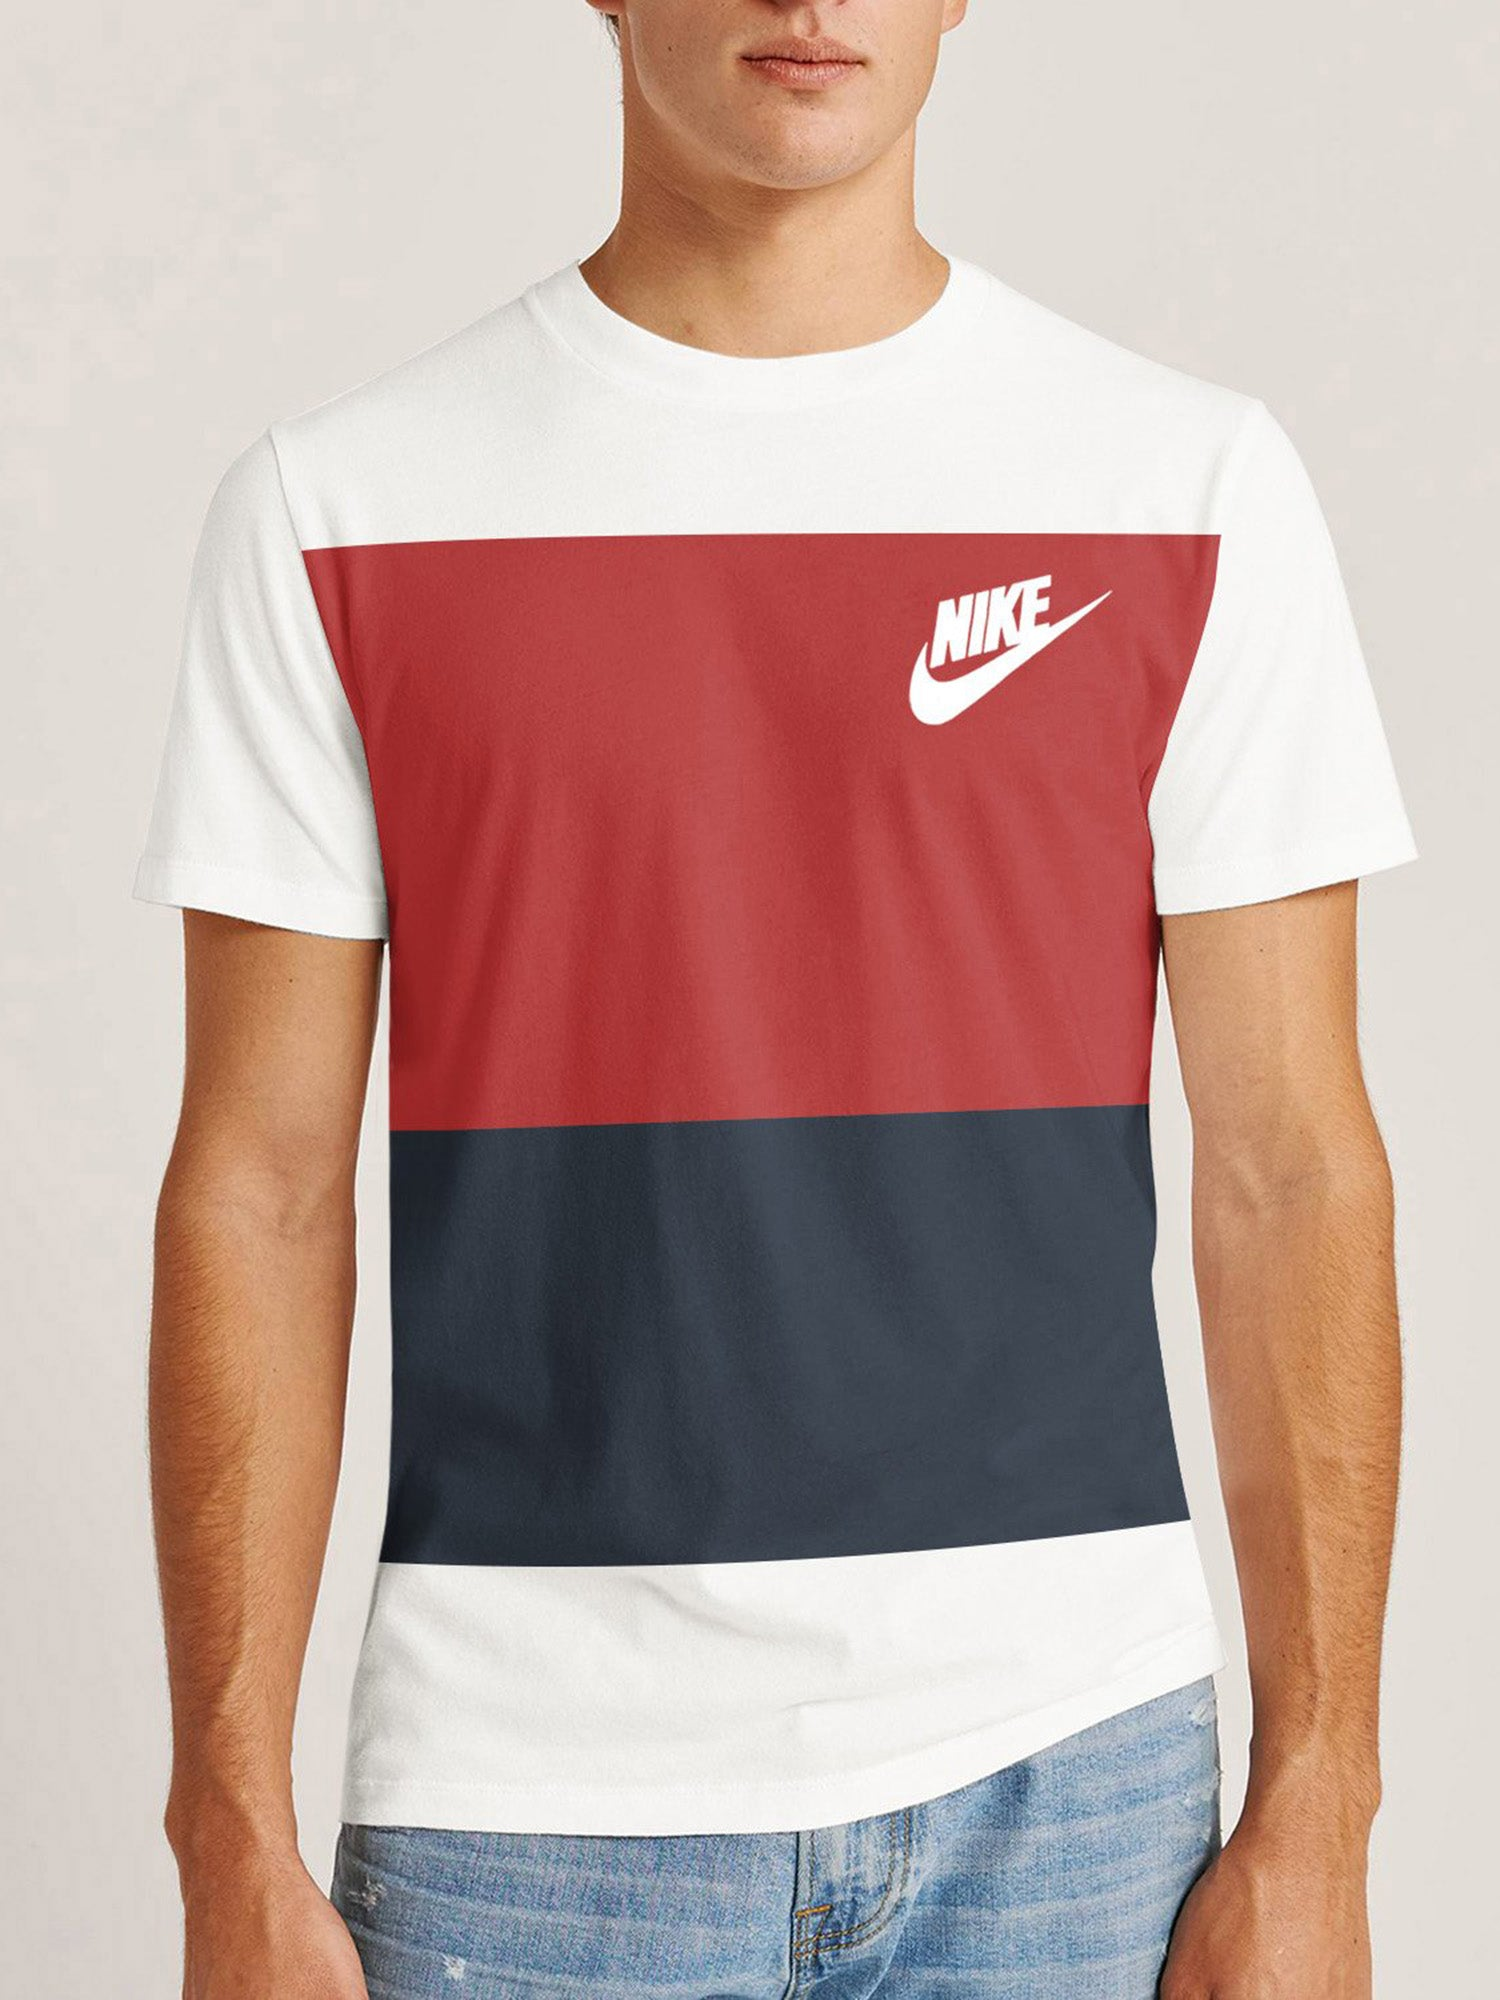 NK Summer Crew Neck Tee Shirt For Men-White with Navy & Red Panel-BE12029